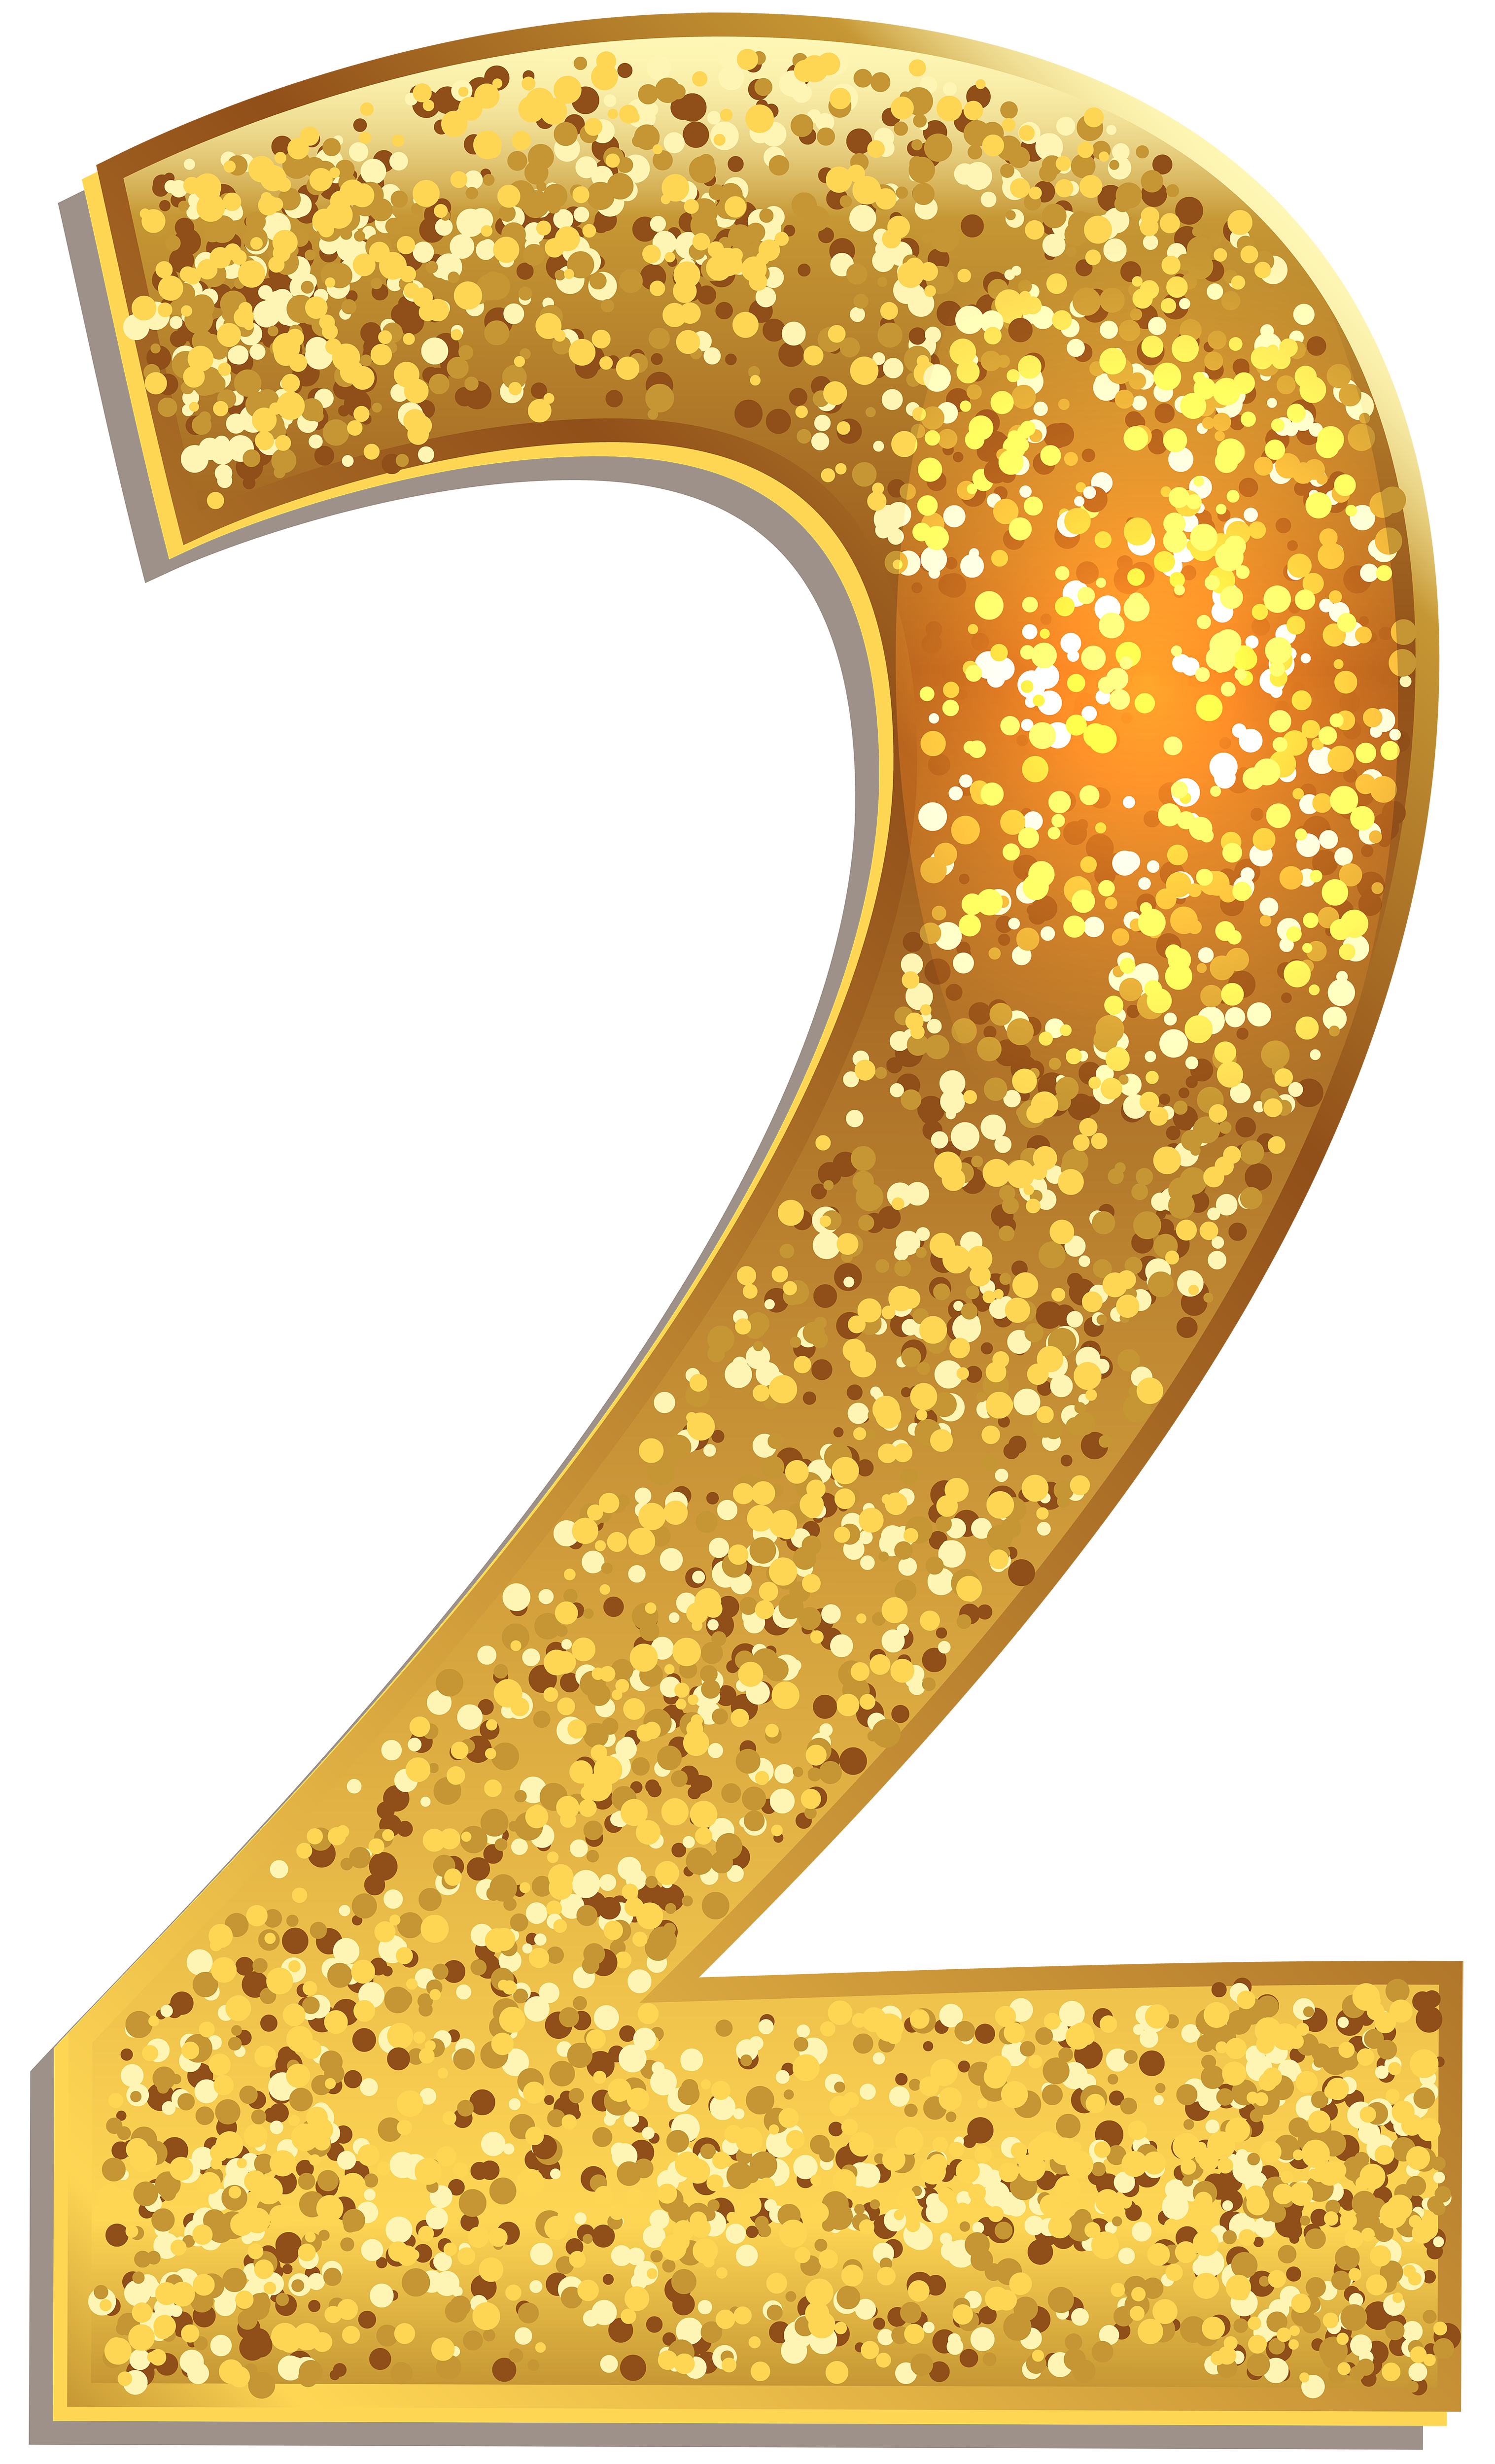 Glitter numbers png. Number two gold shining